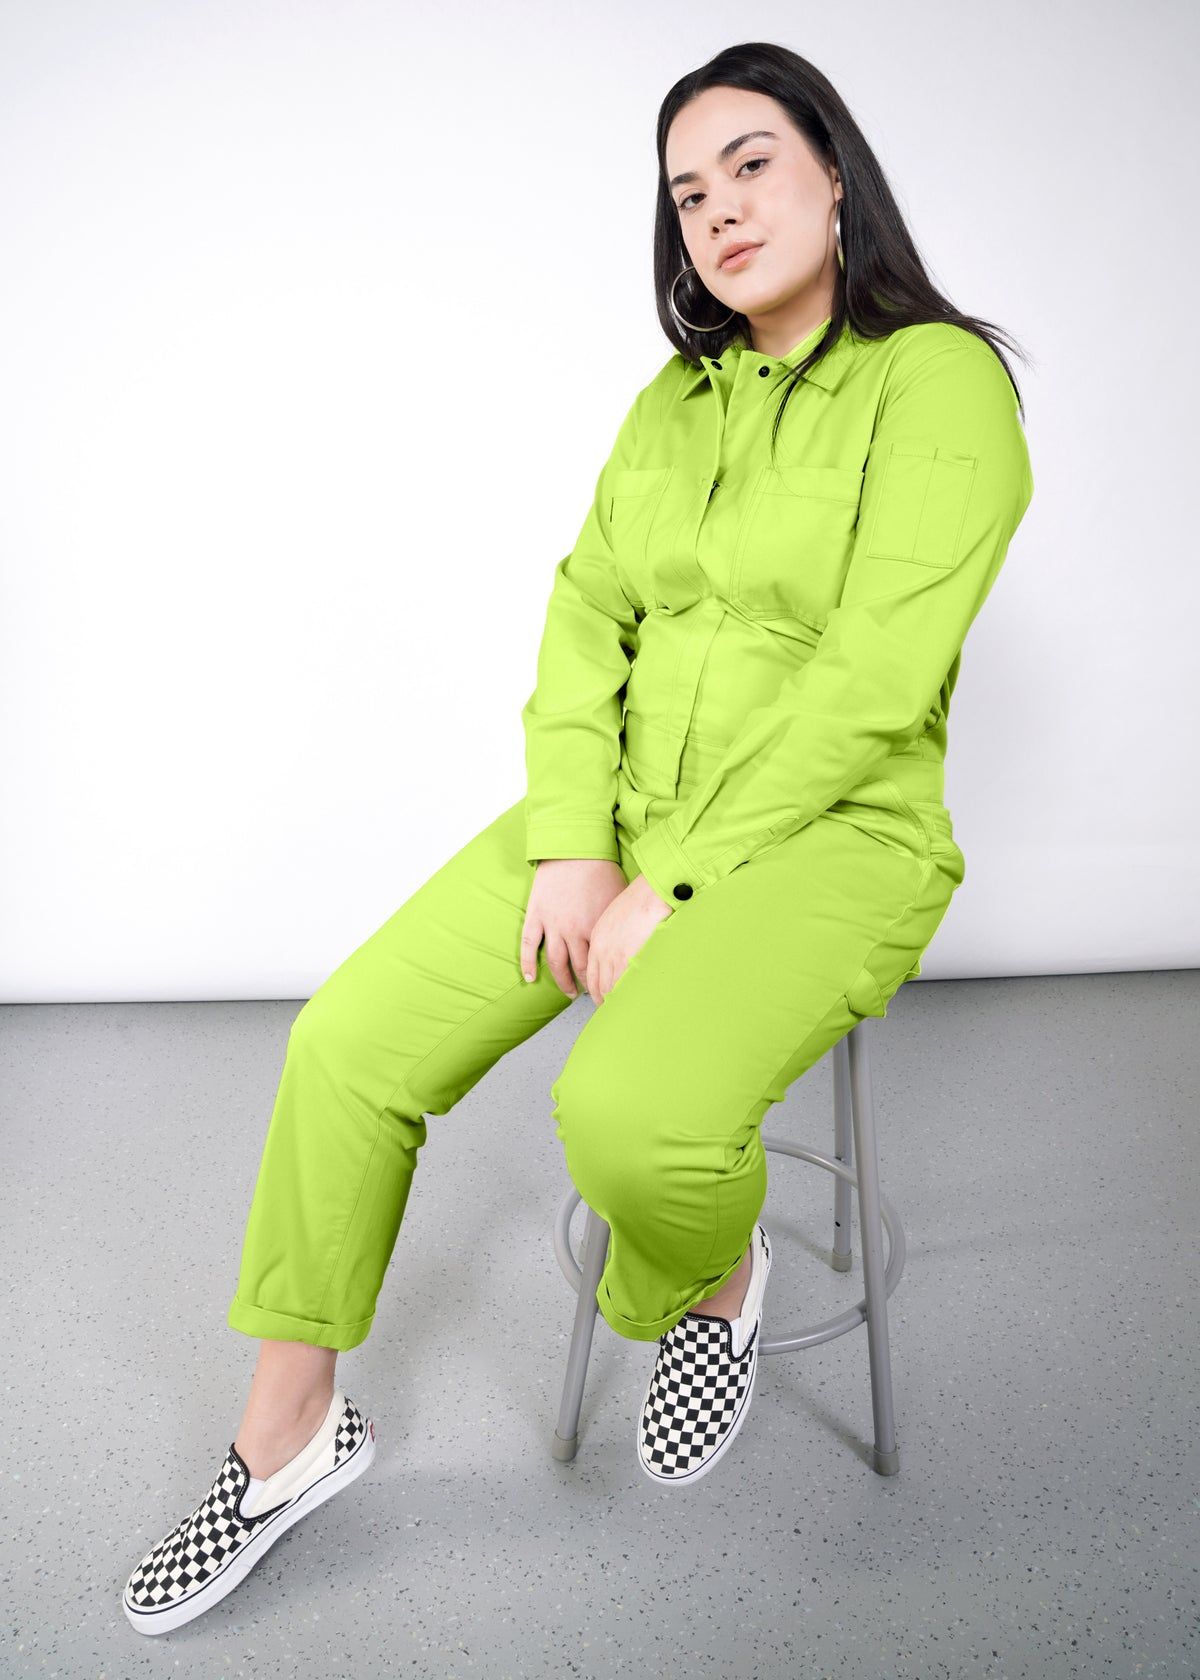 Model wearing neon green long sleeved essential coverall jumpsuit in size large, sitting on stool